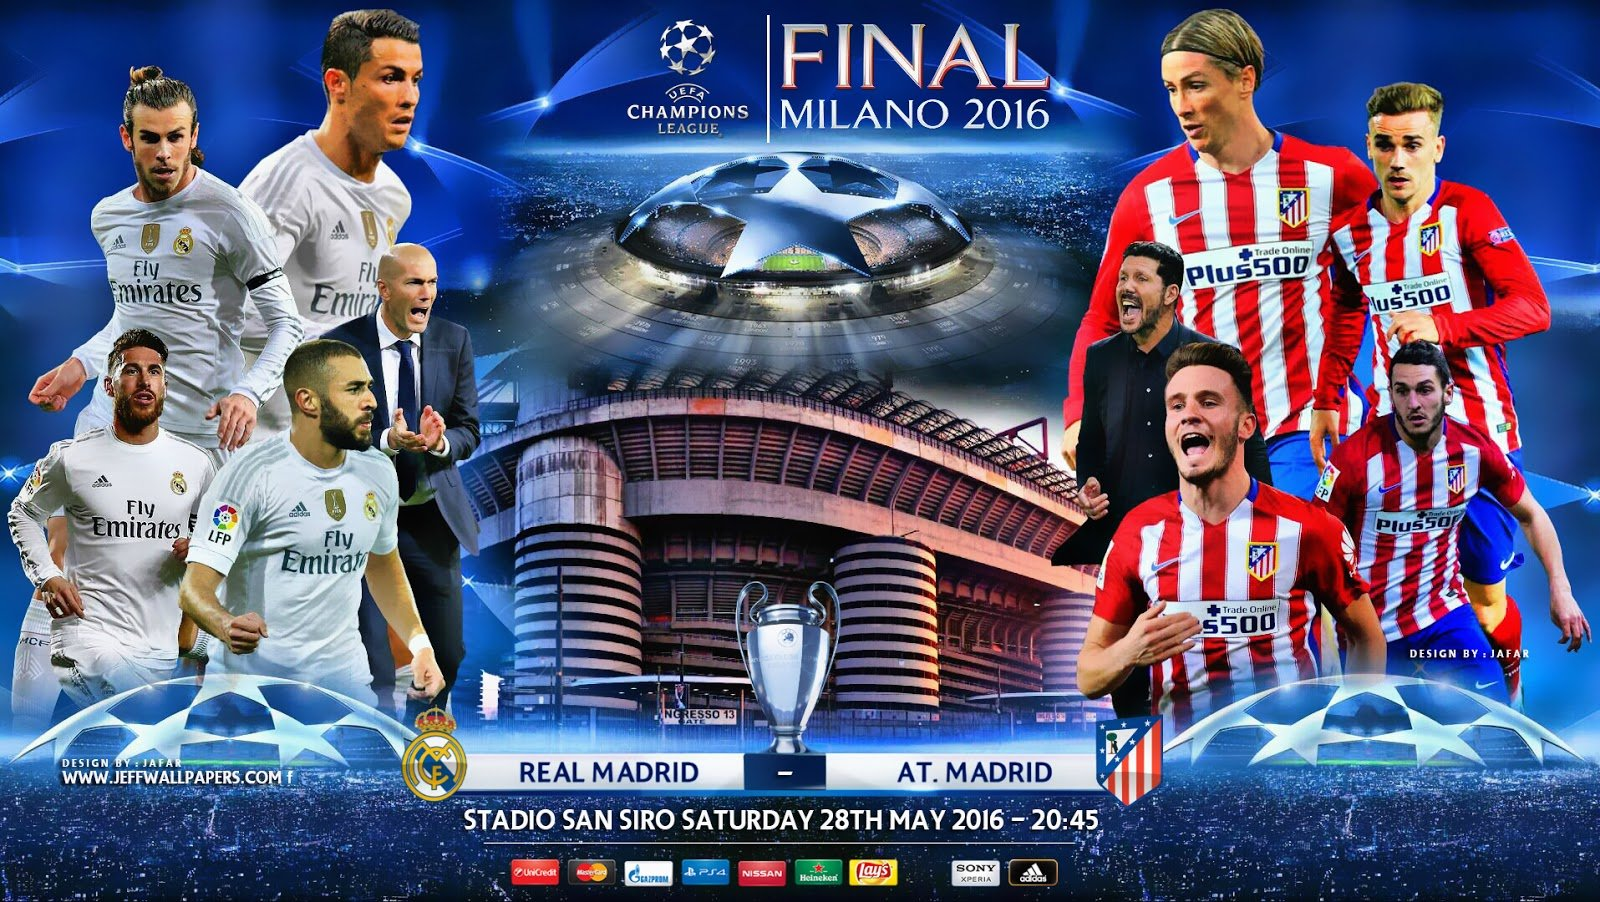 Real Madrid vs Atletico Madrid Final Champions 2016 1600x902